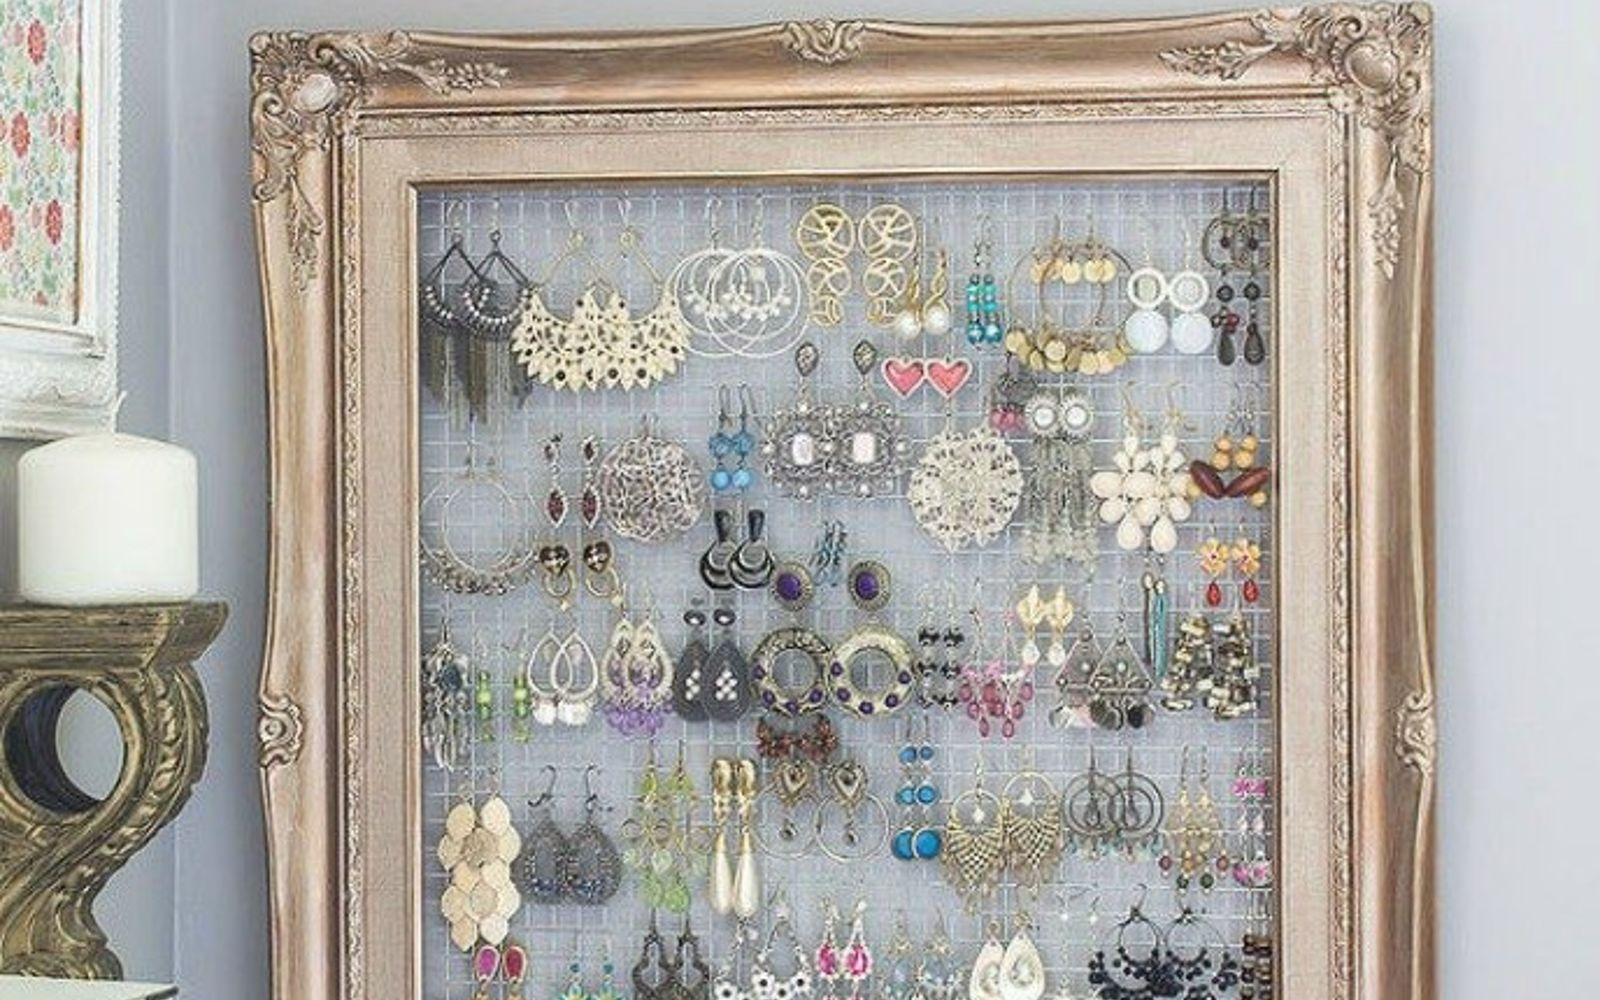 s 18 diy christmas gift ideas you ll want to keep for your home, home decor, This stunning jewelry display board